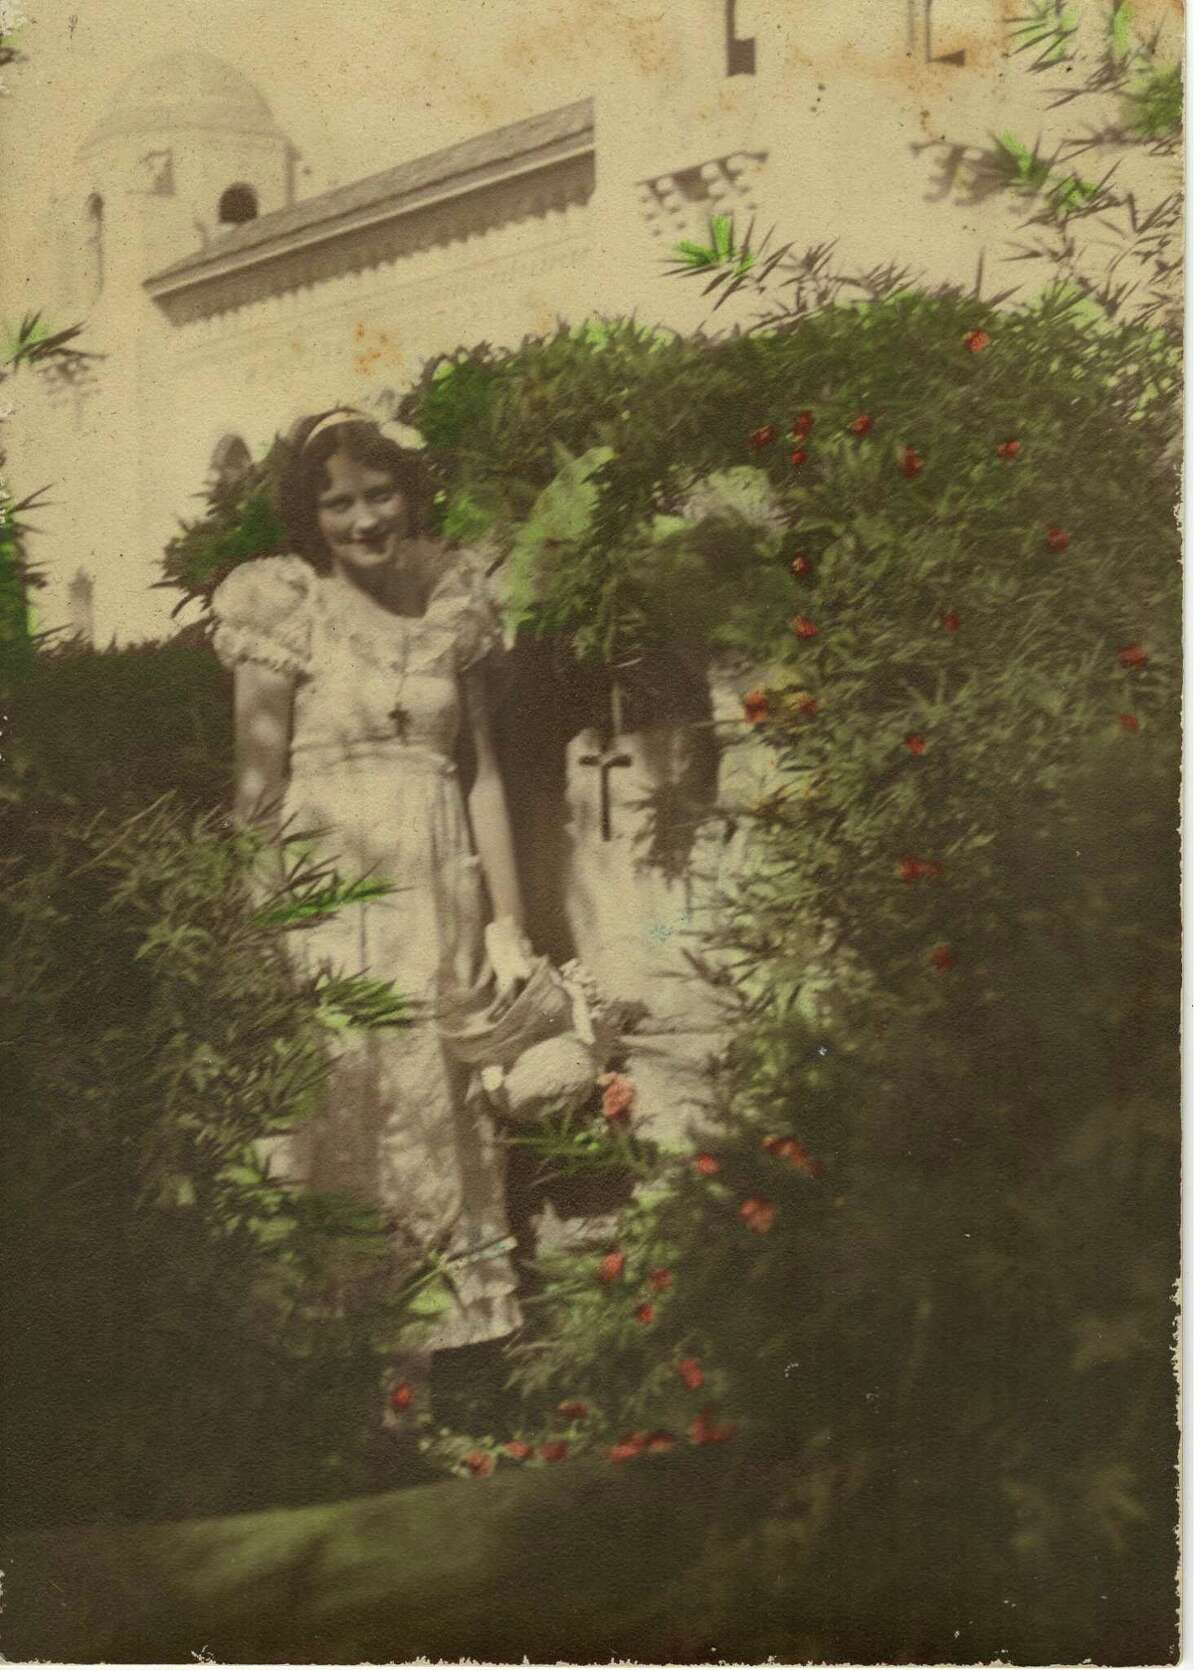 Aline B. Carter in her backyard with the Municipal Auditorium in the background in the early 1930s.